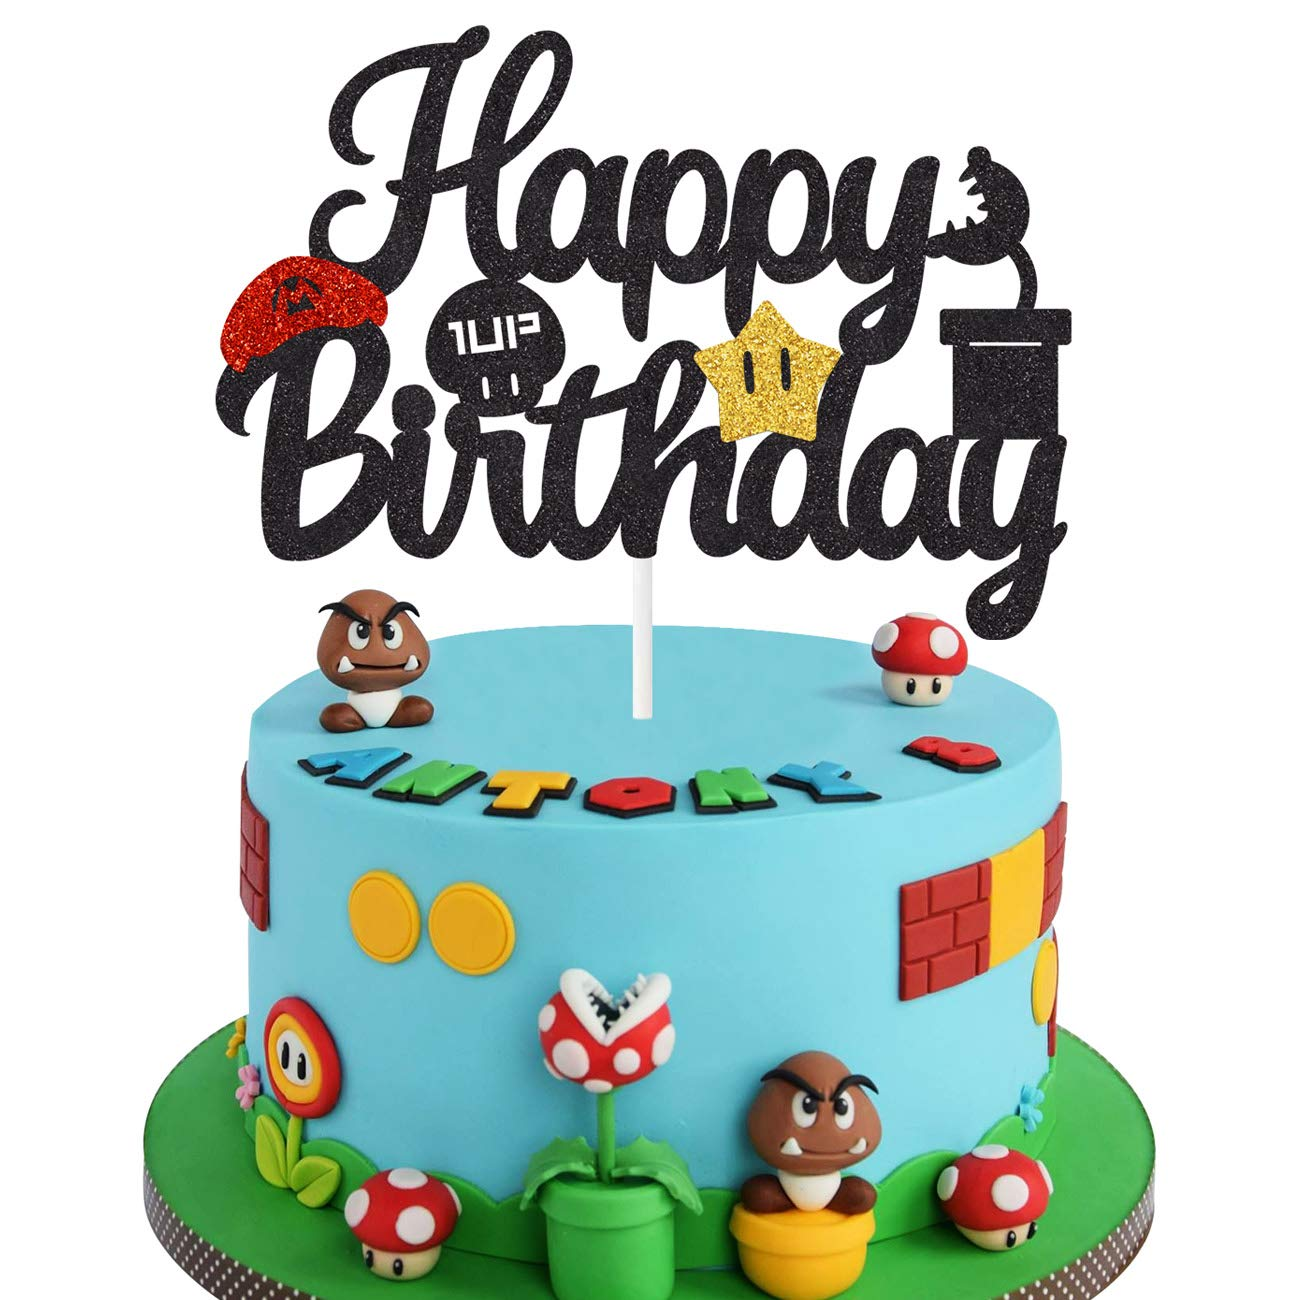 Black Glitter Mario Cake Topper Happy Birthday Cake Decoration Video Game Themed Kids Boys Birthday Party Supplies Amazon Com Grocery Gourmet Food